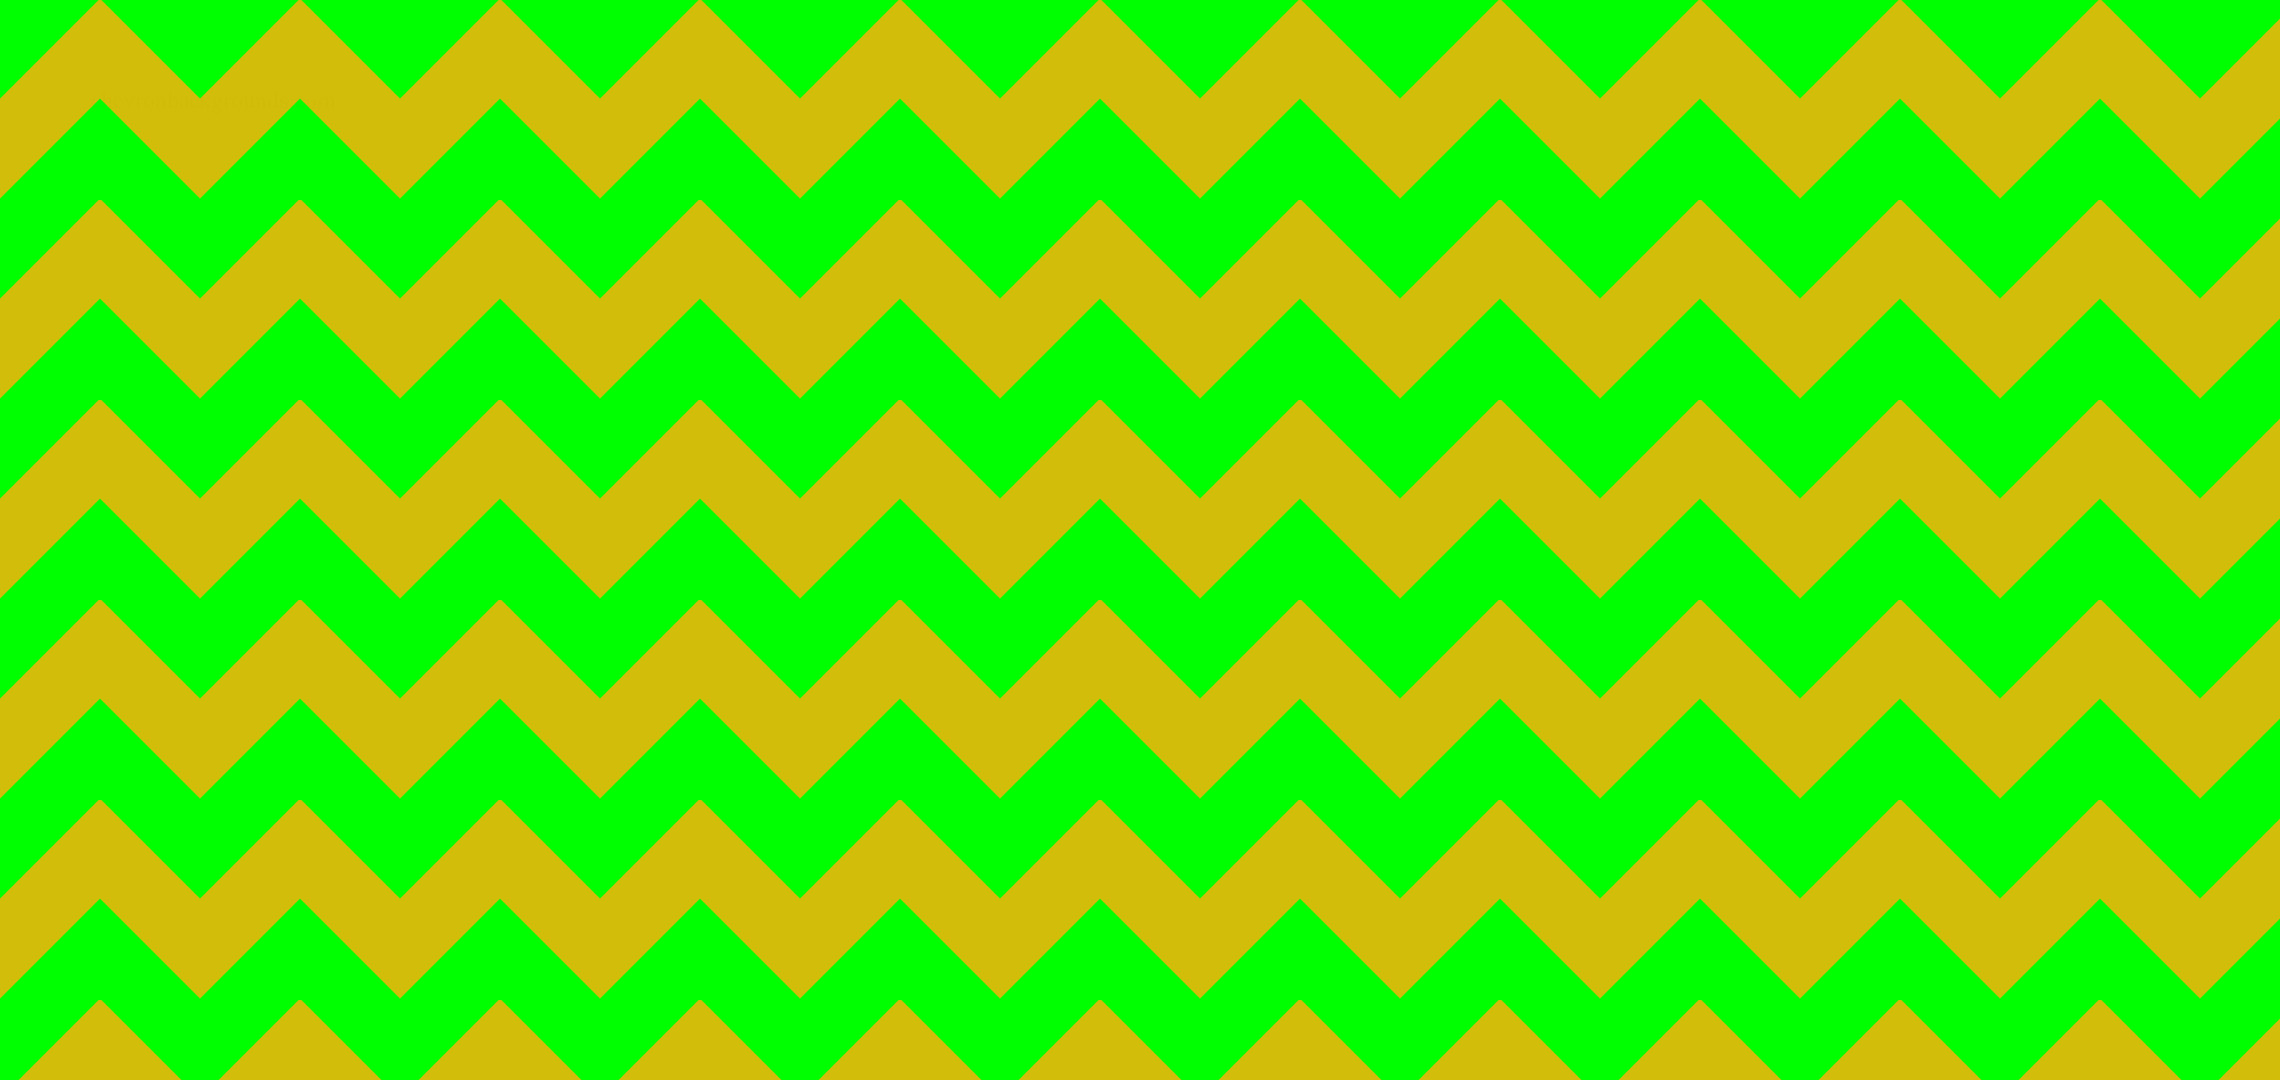 2280x1080 #00FF00 Light Lime Green #D2BD0A Mustard Yellow Chevron Stripes Background